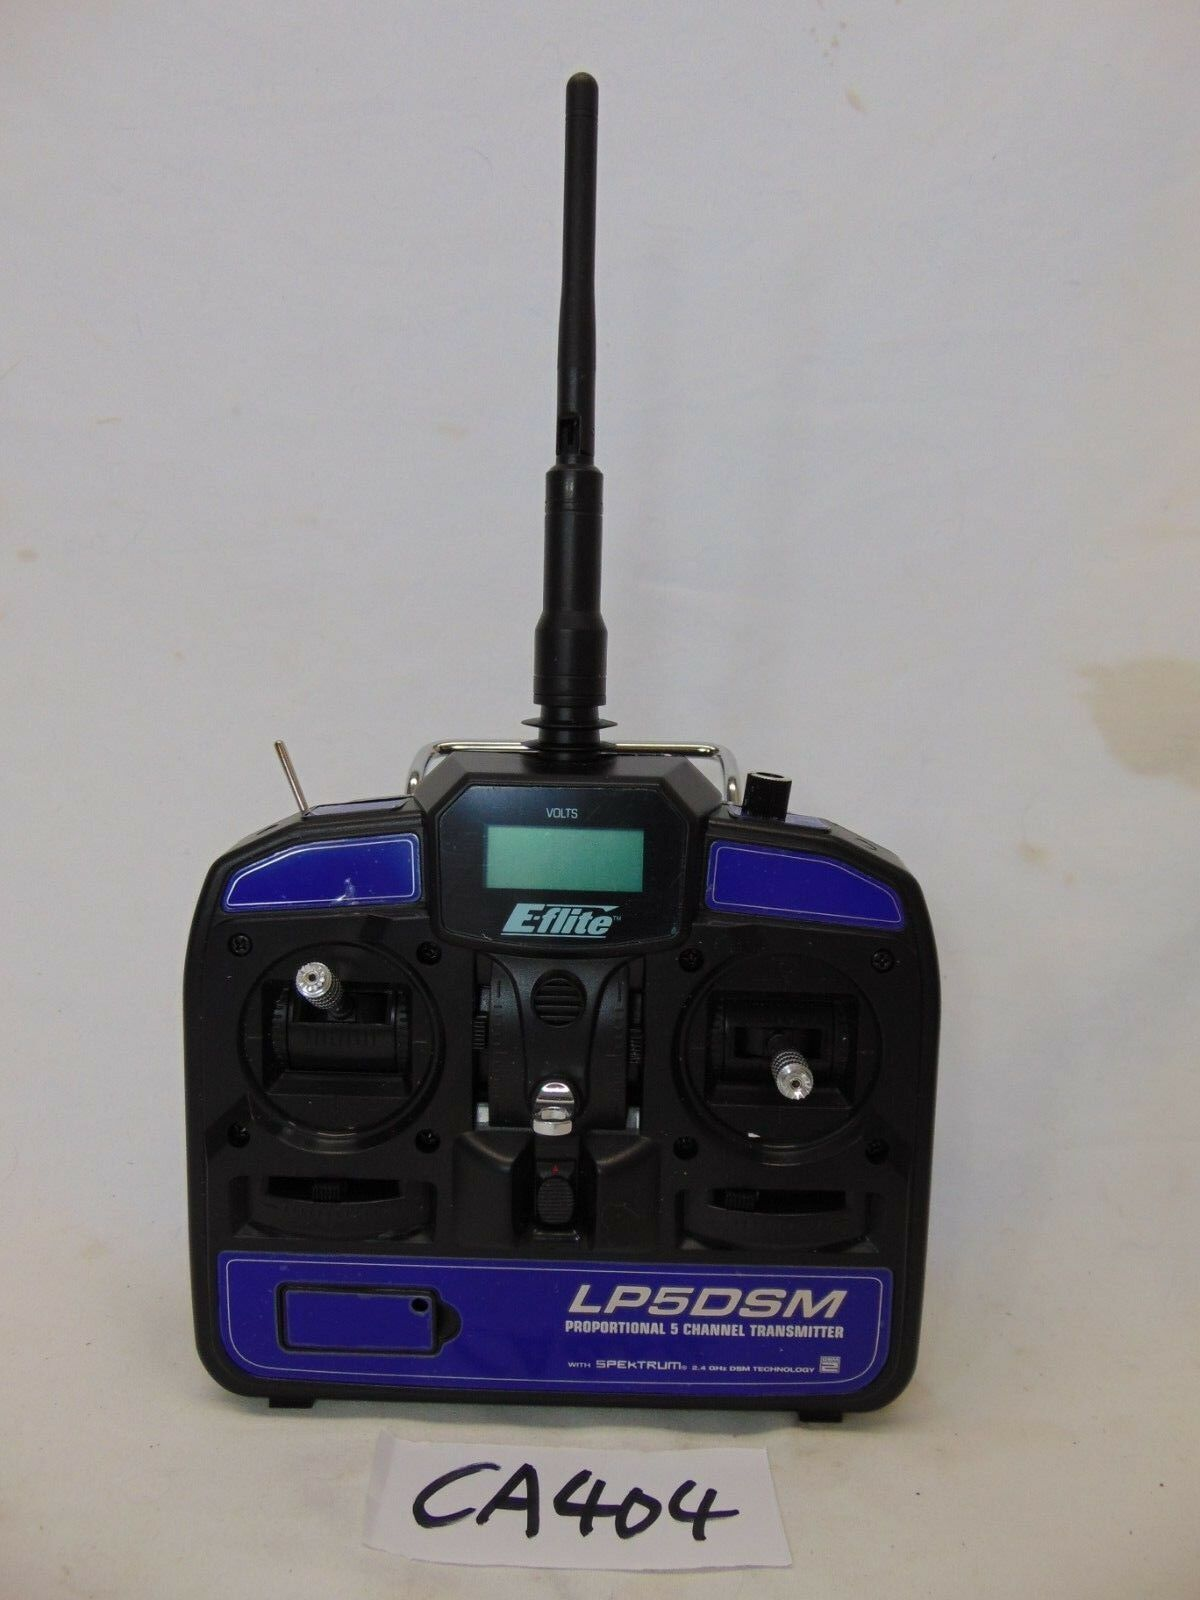 E-FLITE LP5DSM PROPORTIANAL 5 CHANNEL TRANSMITTER REMOTE  2.4 GHZ SPEKTRUM